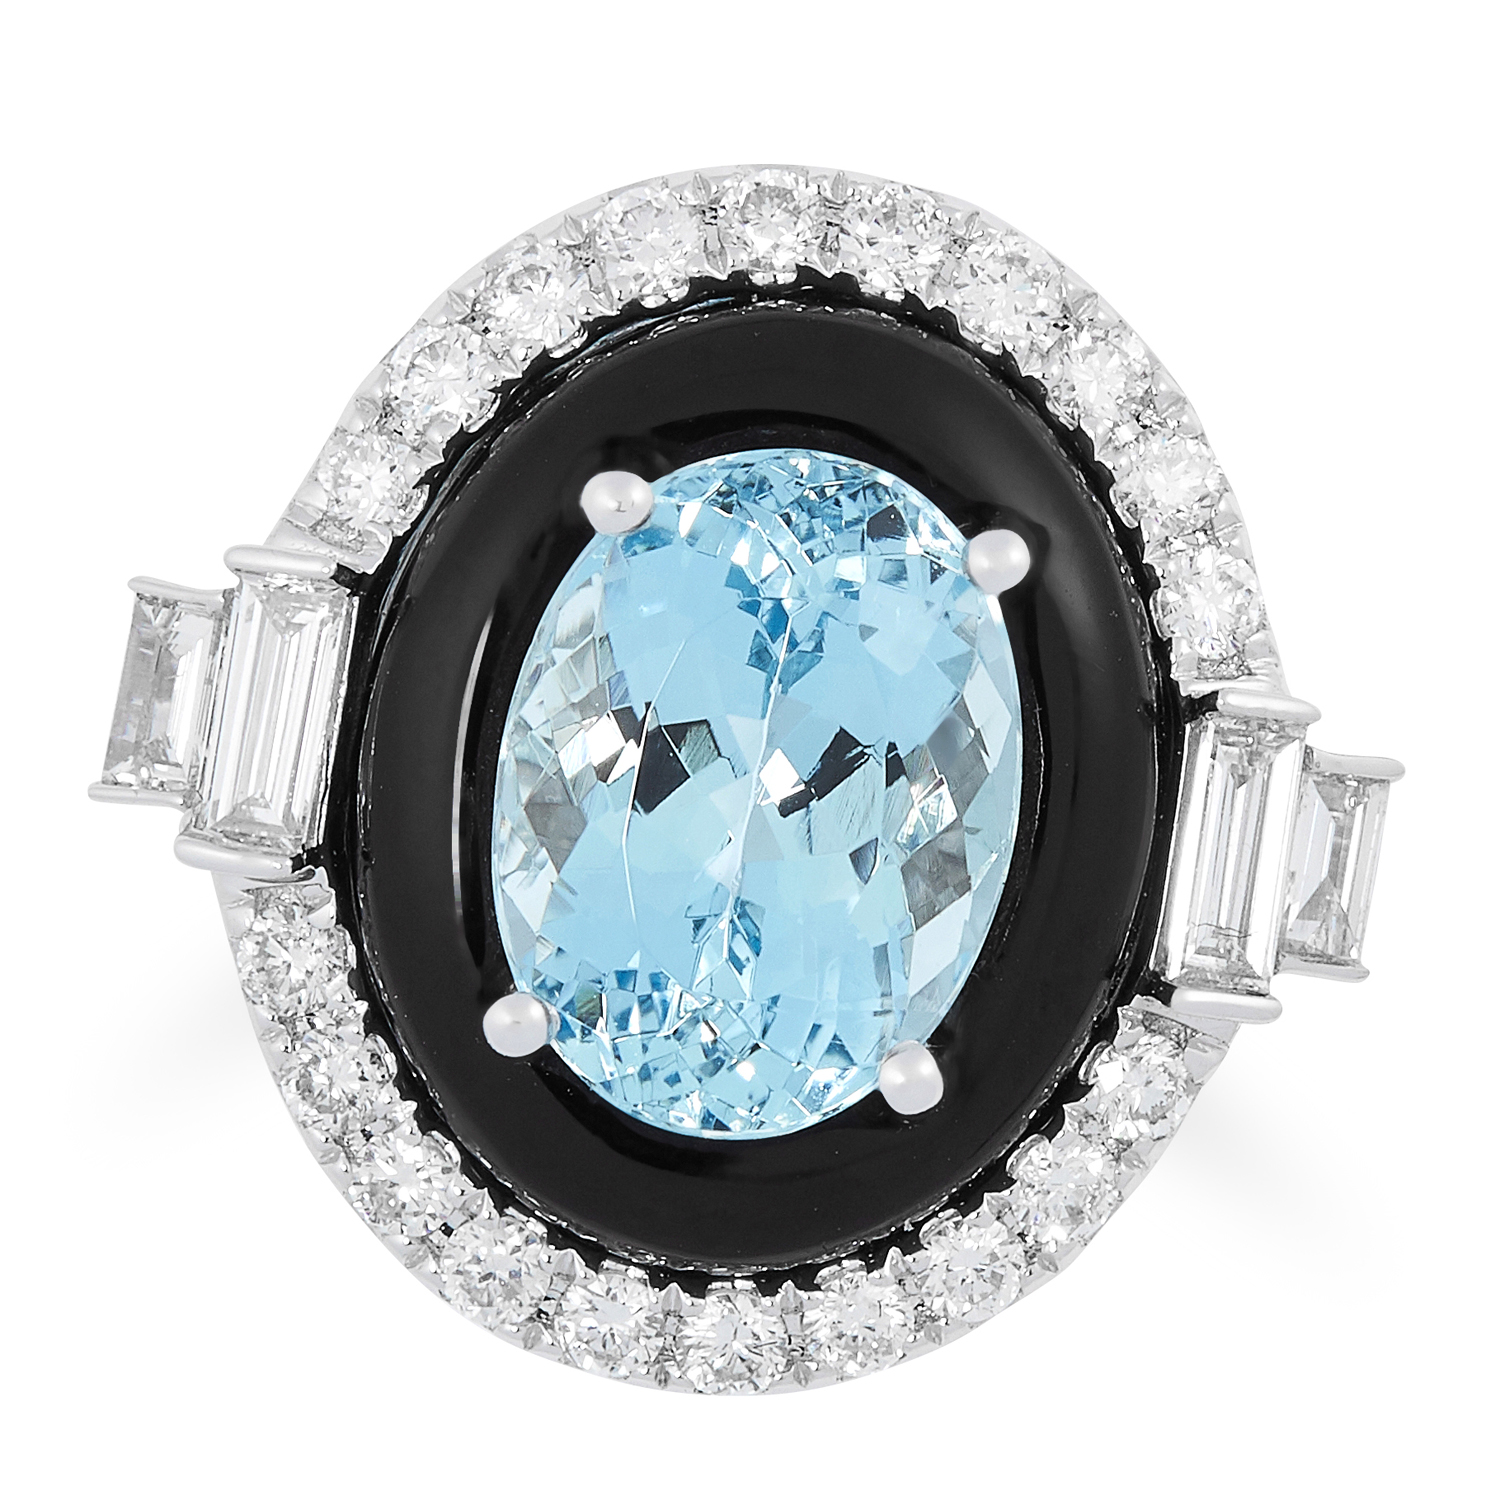 AN AQUAMARINE, ONYX AND DIAMOND DRESS RING set with an oval mixed cut aquamarine of 2.81 carats,